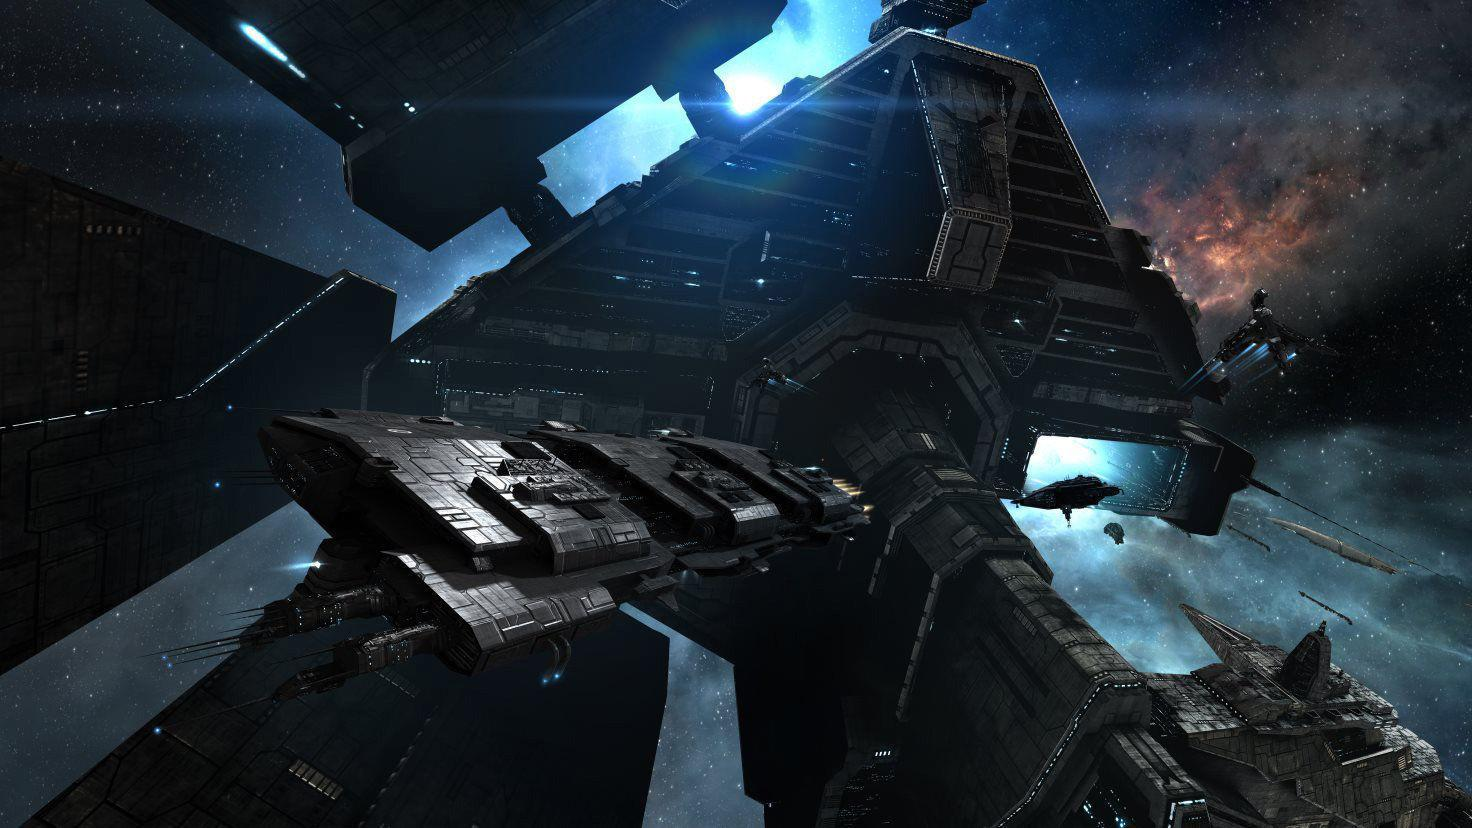 Here is another image. It's a really fun mmo. ^-^ #eveonline